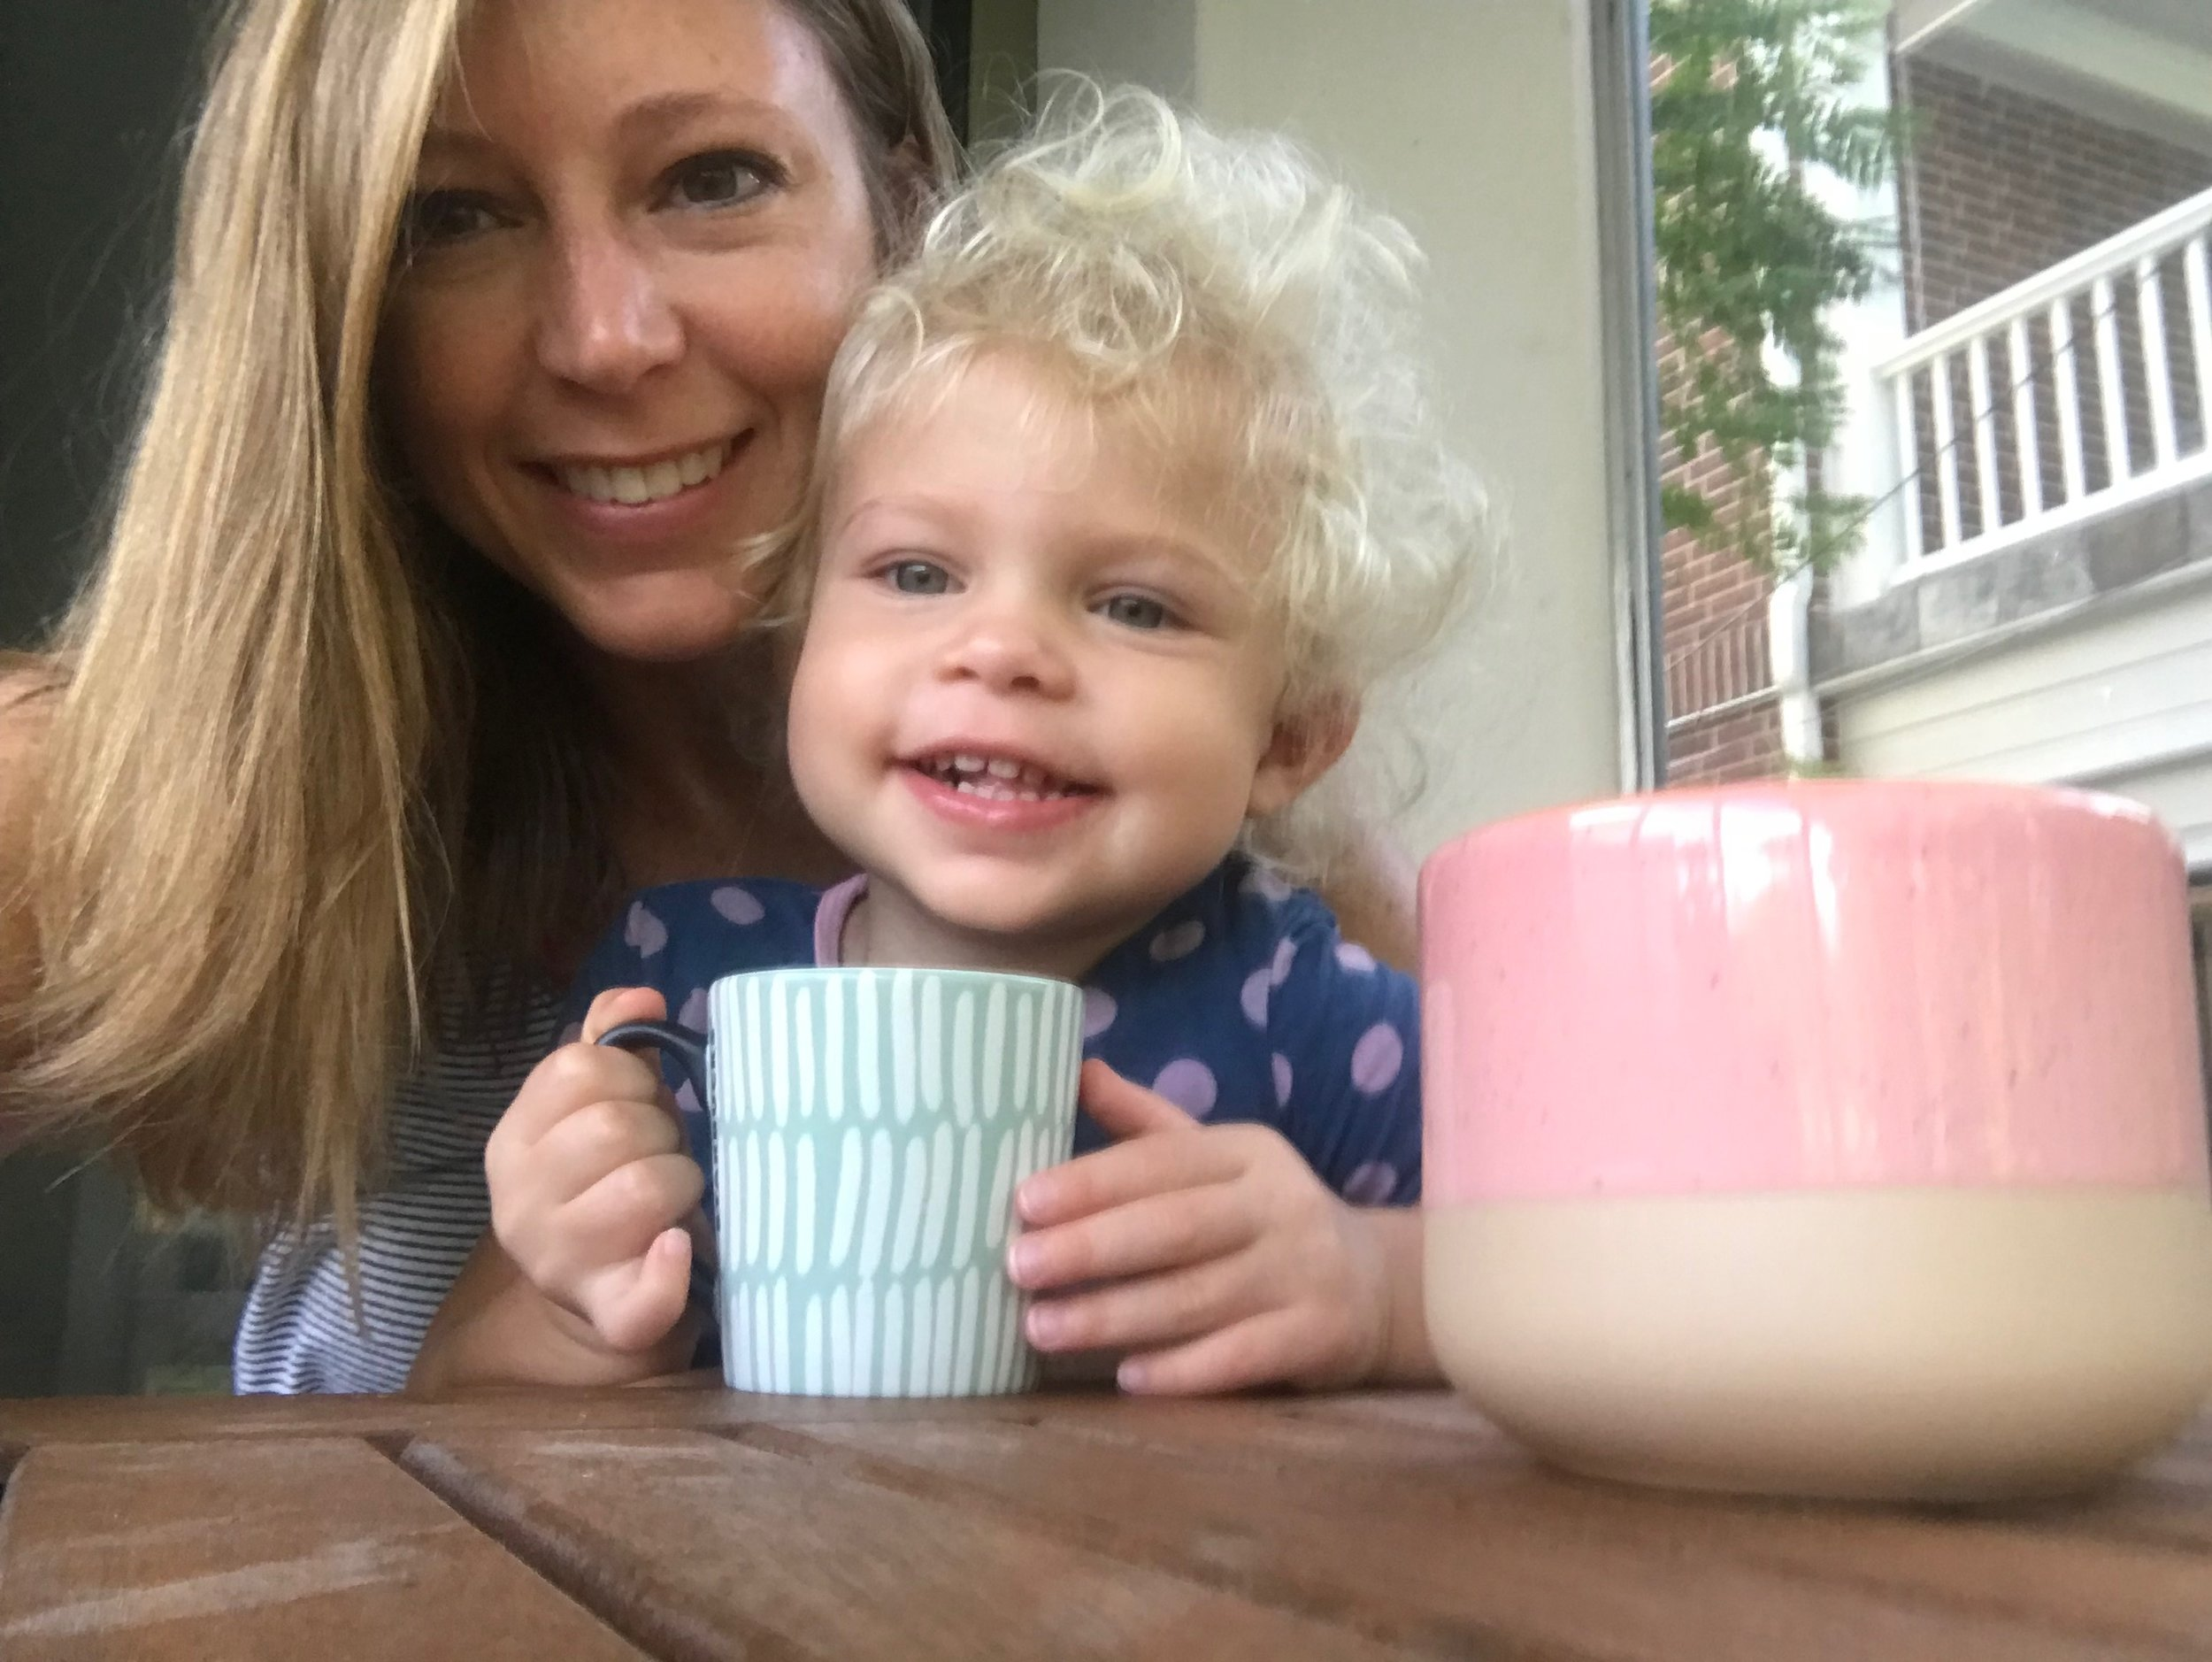 Enjoying a cup of coffee with my adorable niece